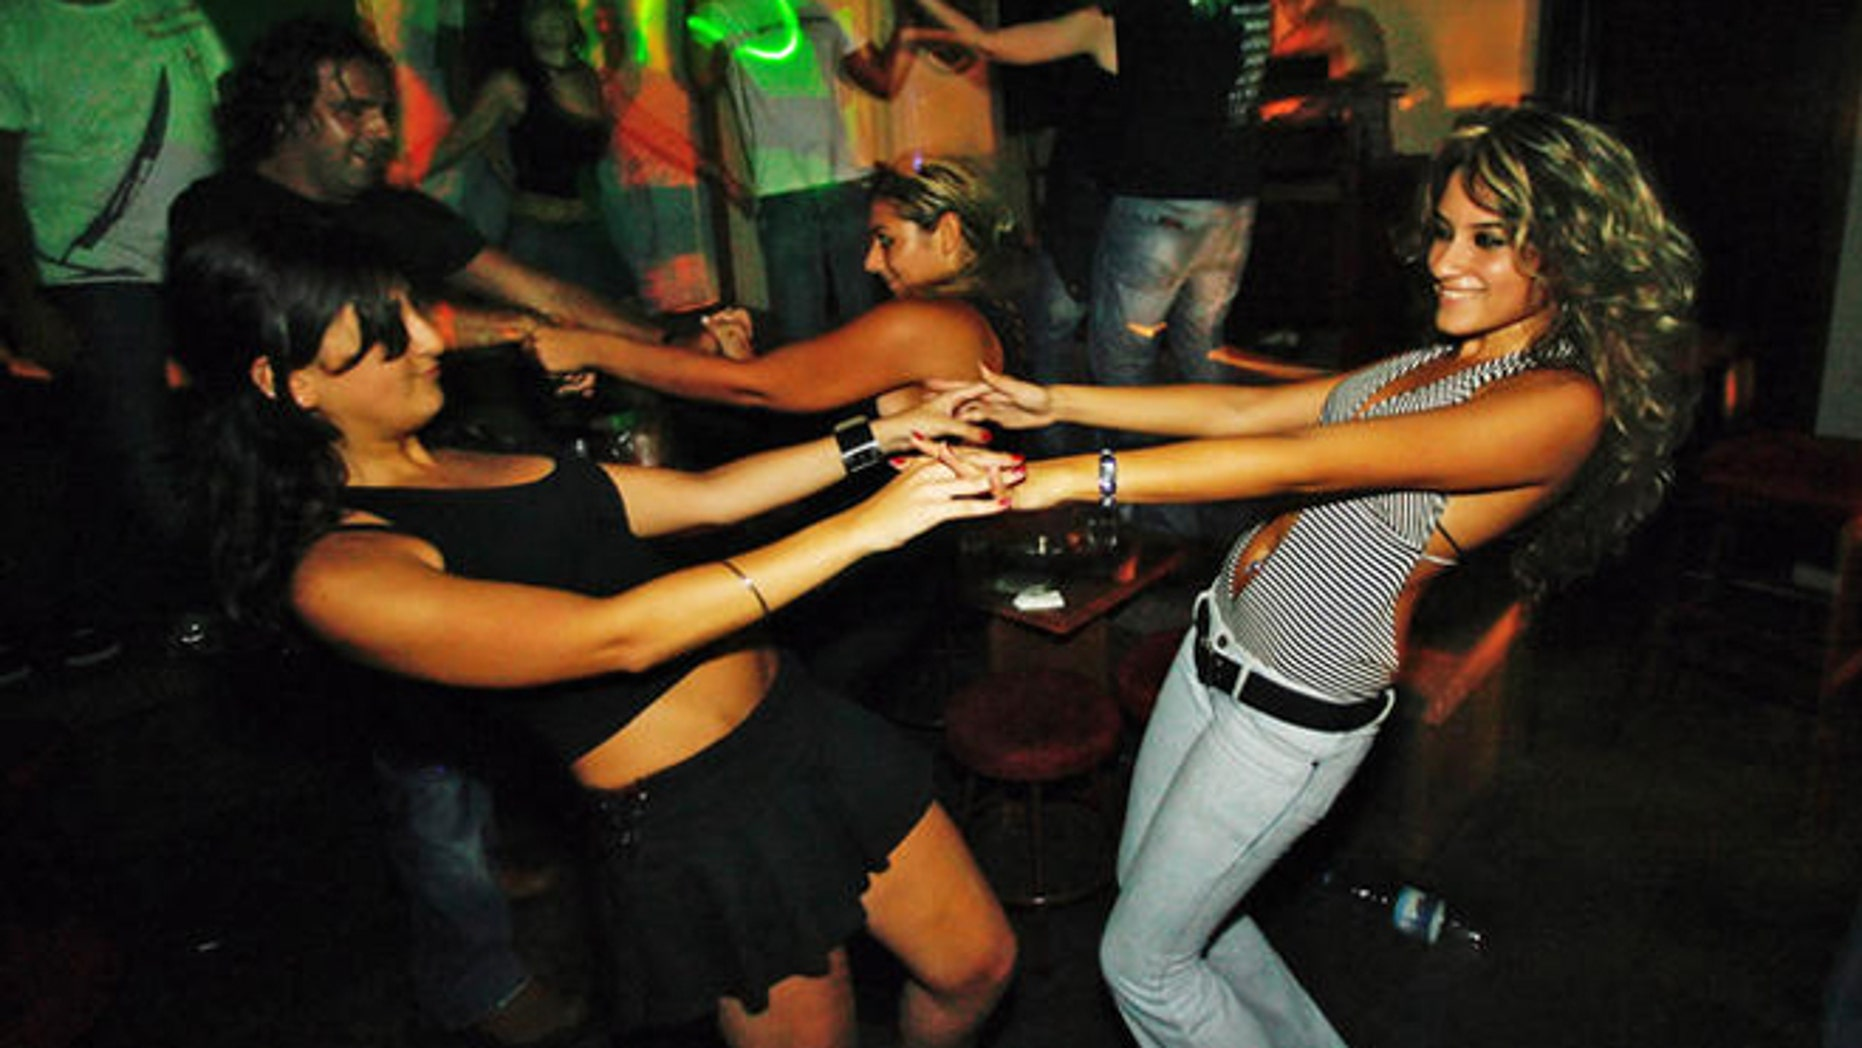 Lebanese women dance in the BOA bar at Monot Street in the Christian heartland of Ashrafieh, an area of Beirut, Lebanon, late Saturday, Aug. 19, 2006. On the sixth day of the UN-brokered cease-fire the Lebanese capital was returning to normal as bars, nightclubs, and restaurants came back to life after 34-day-long fighting between the Israel and Hezbollah guerrillas. (AP Photo/Kevork Djansezian)